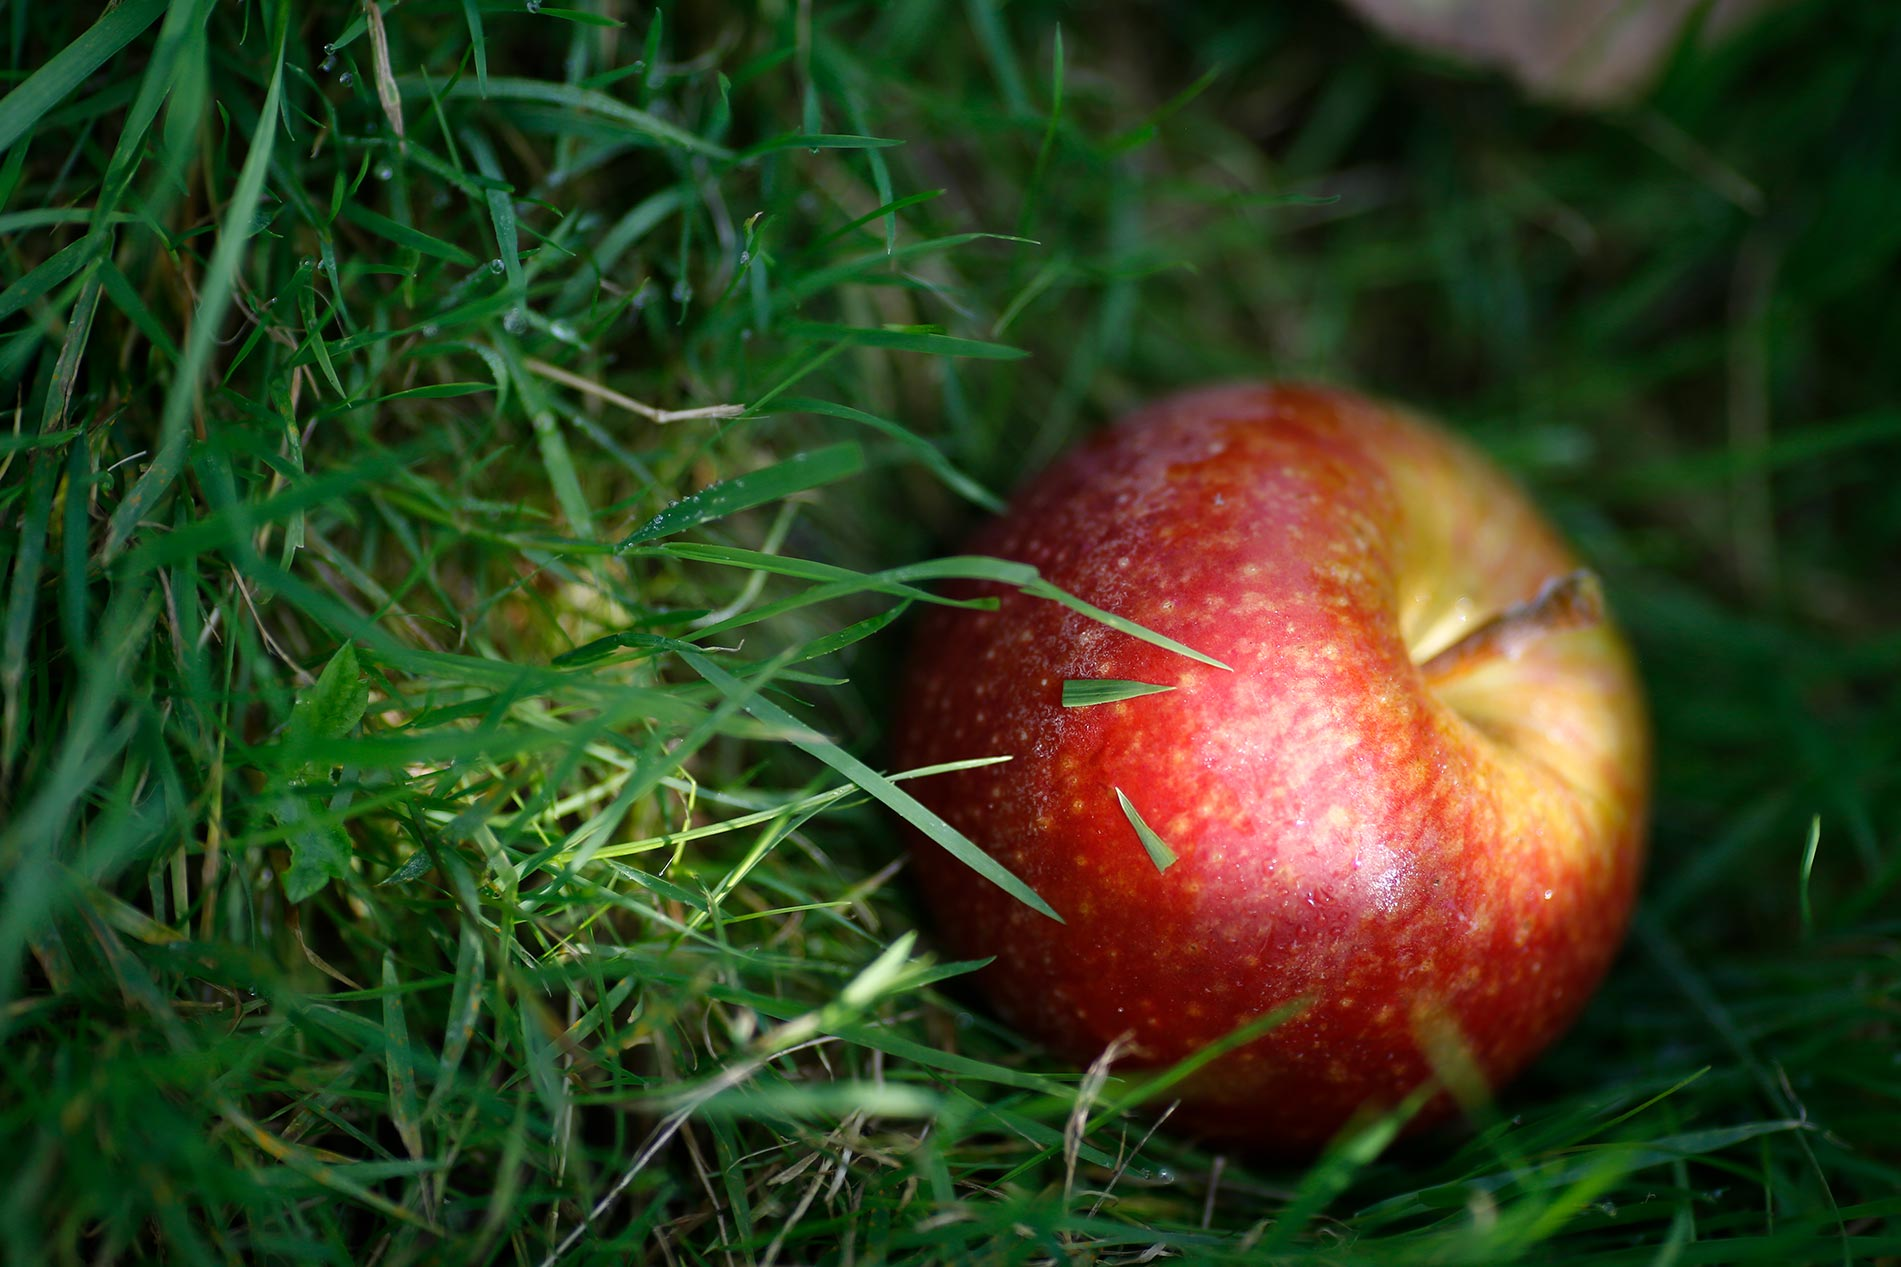 Pomme Vergers Hecky